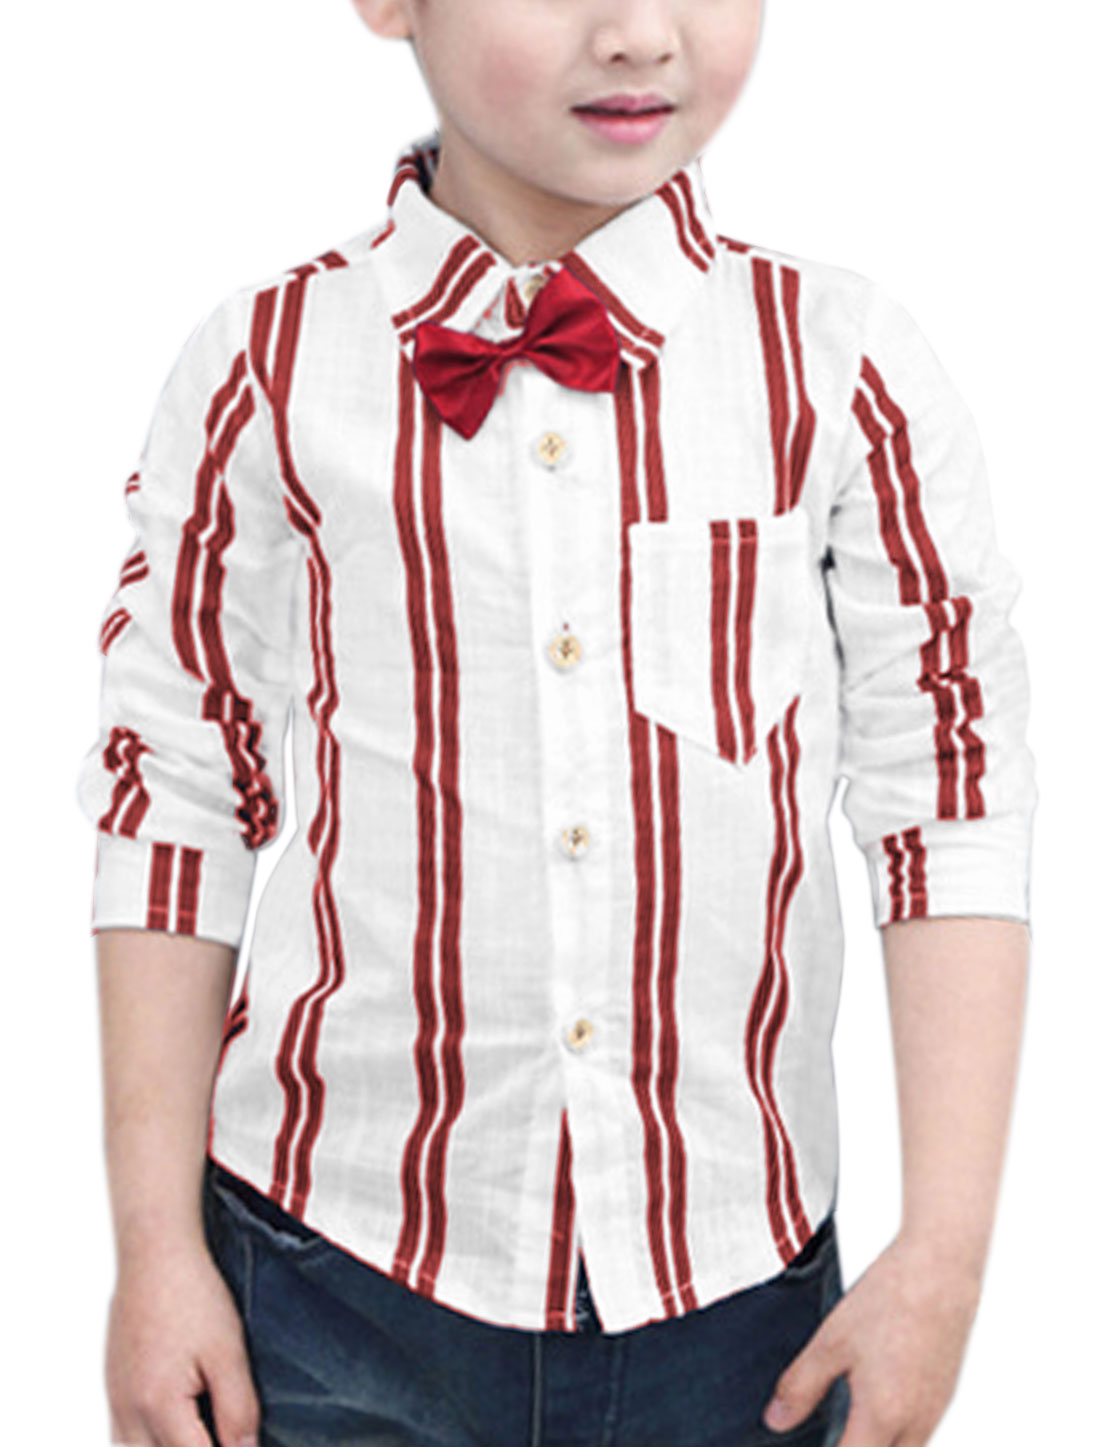 Boys One Pocket Bowknot Brooch Decor Stripes Shirt Red 7